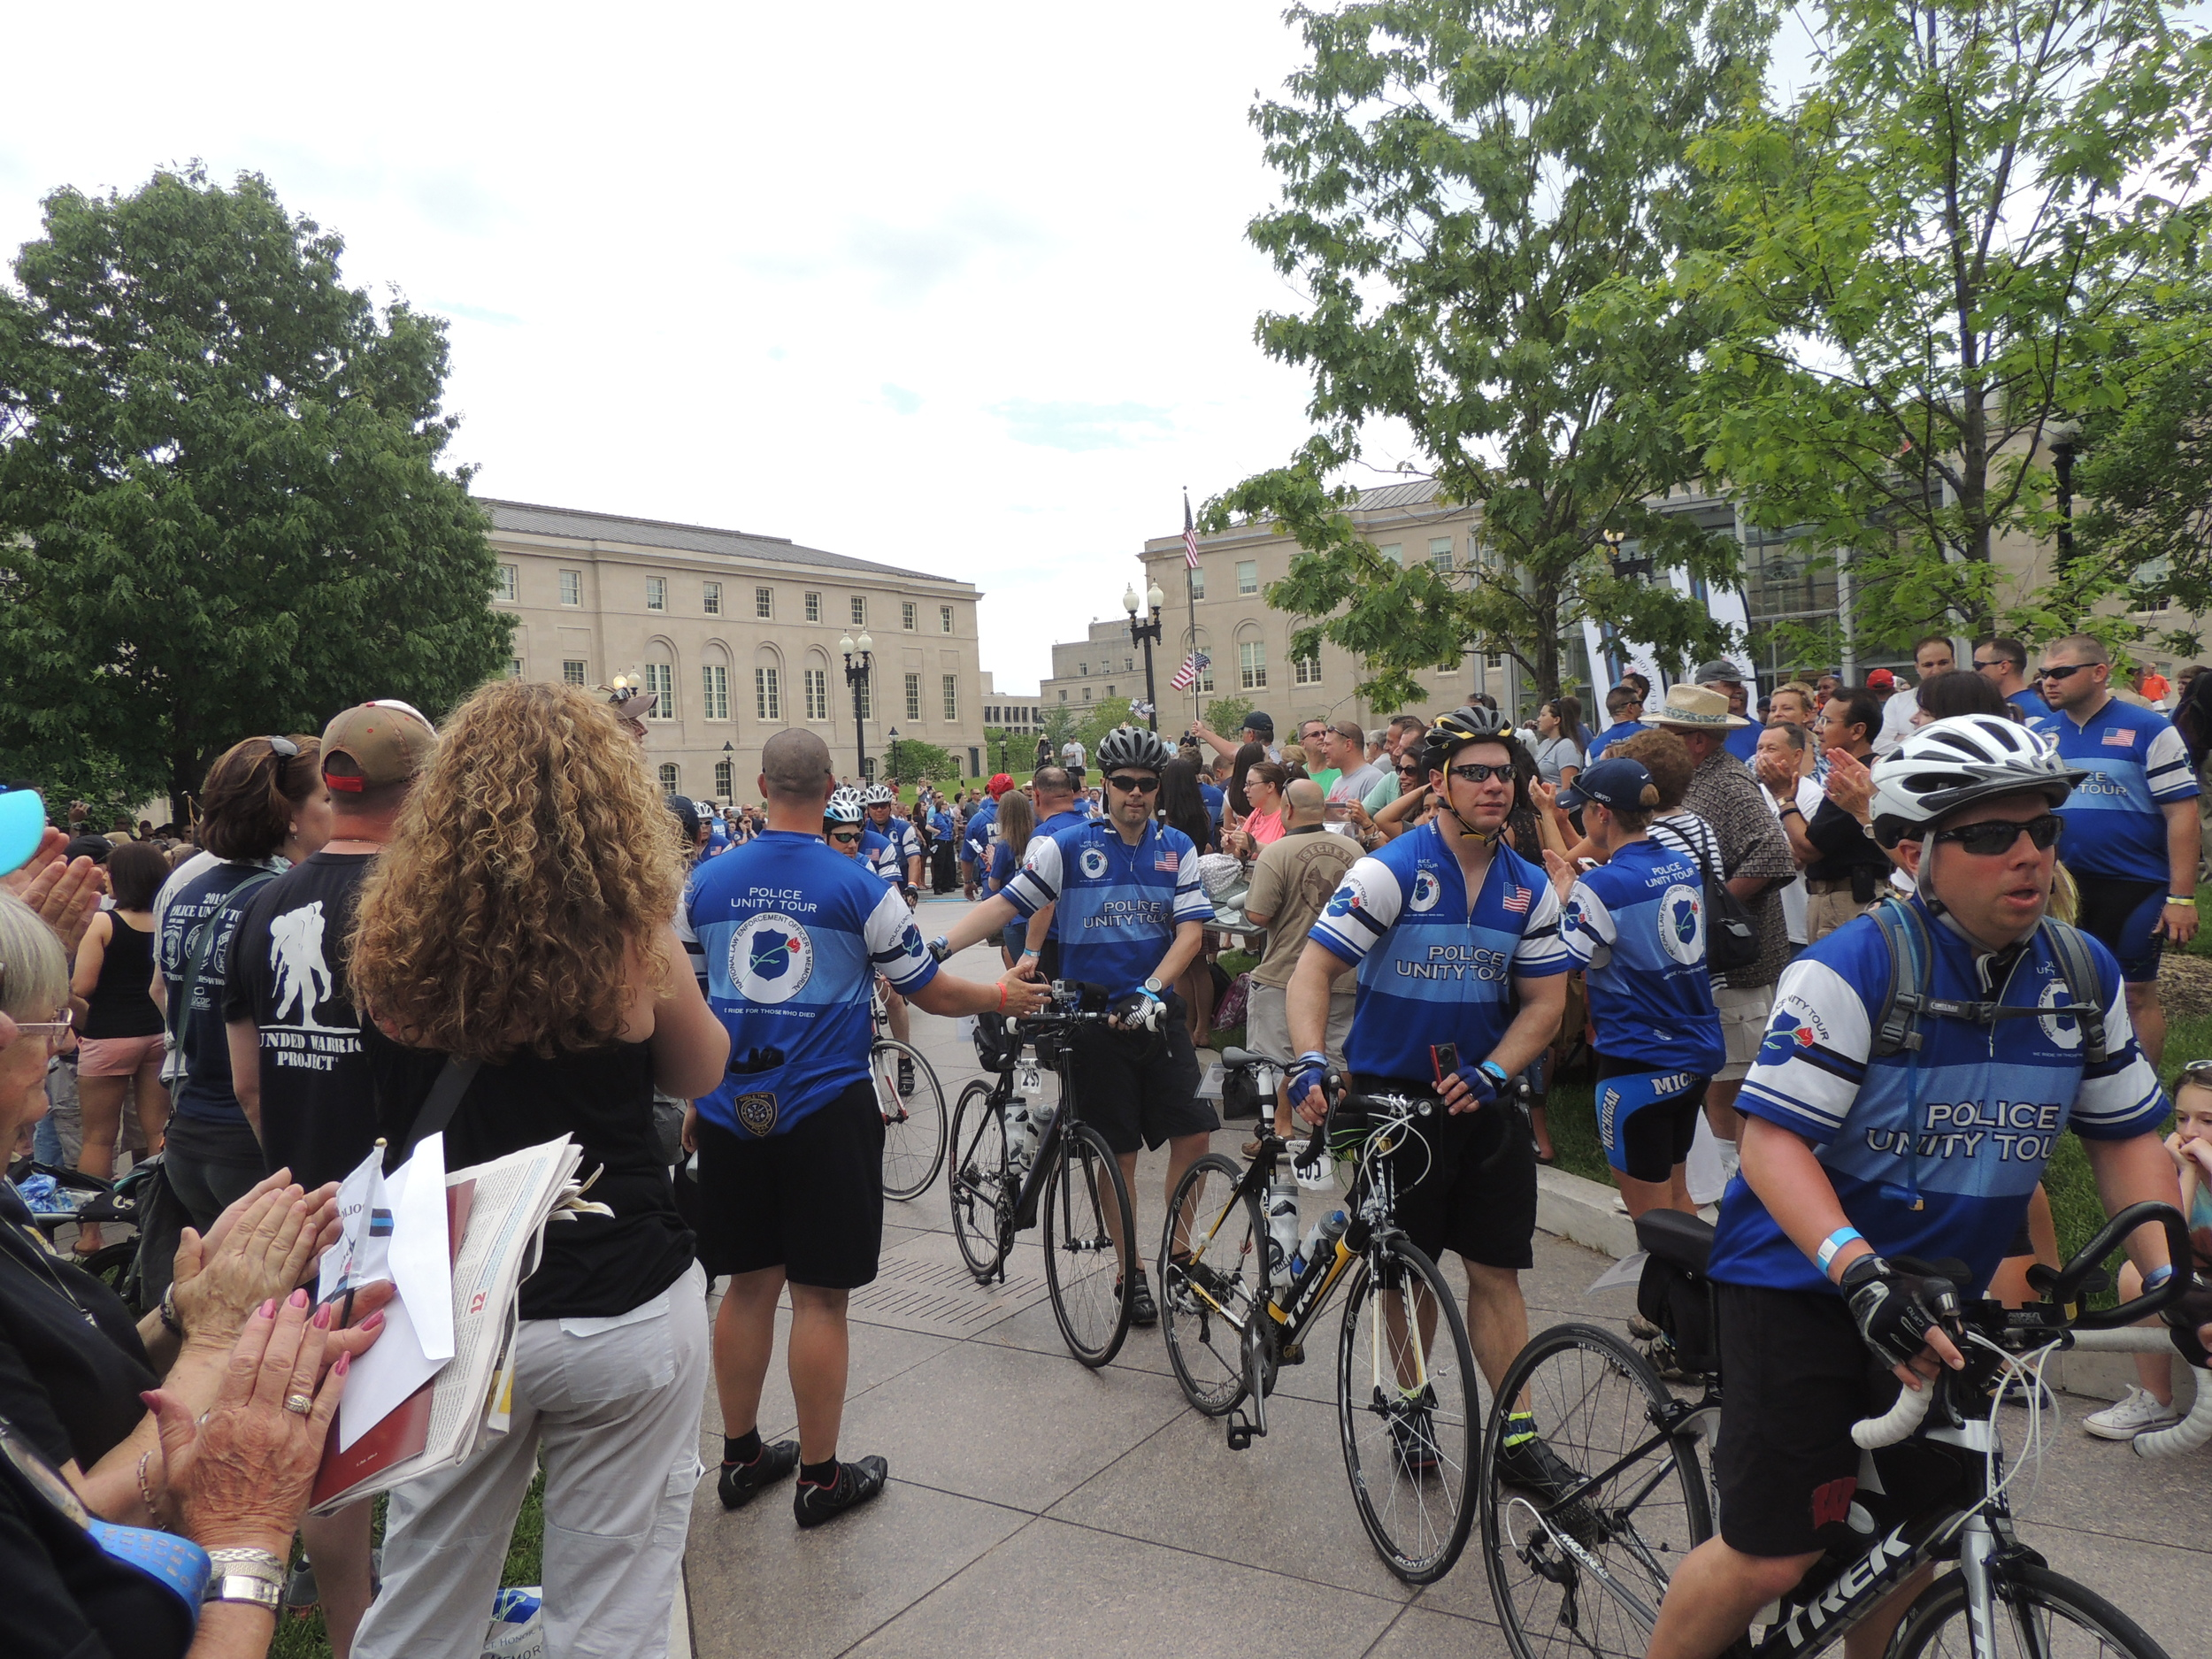 Riders arriving at the National Law Enforcement Officers Memorial.